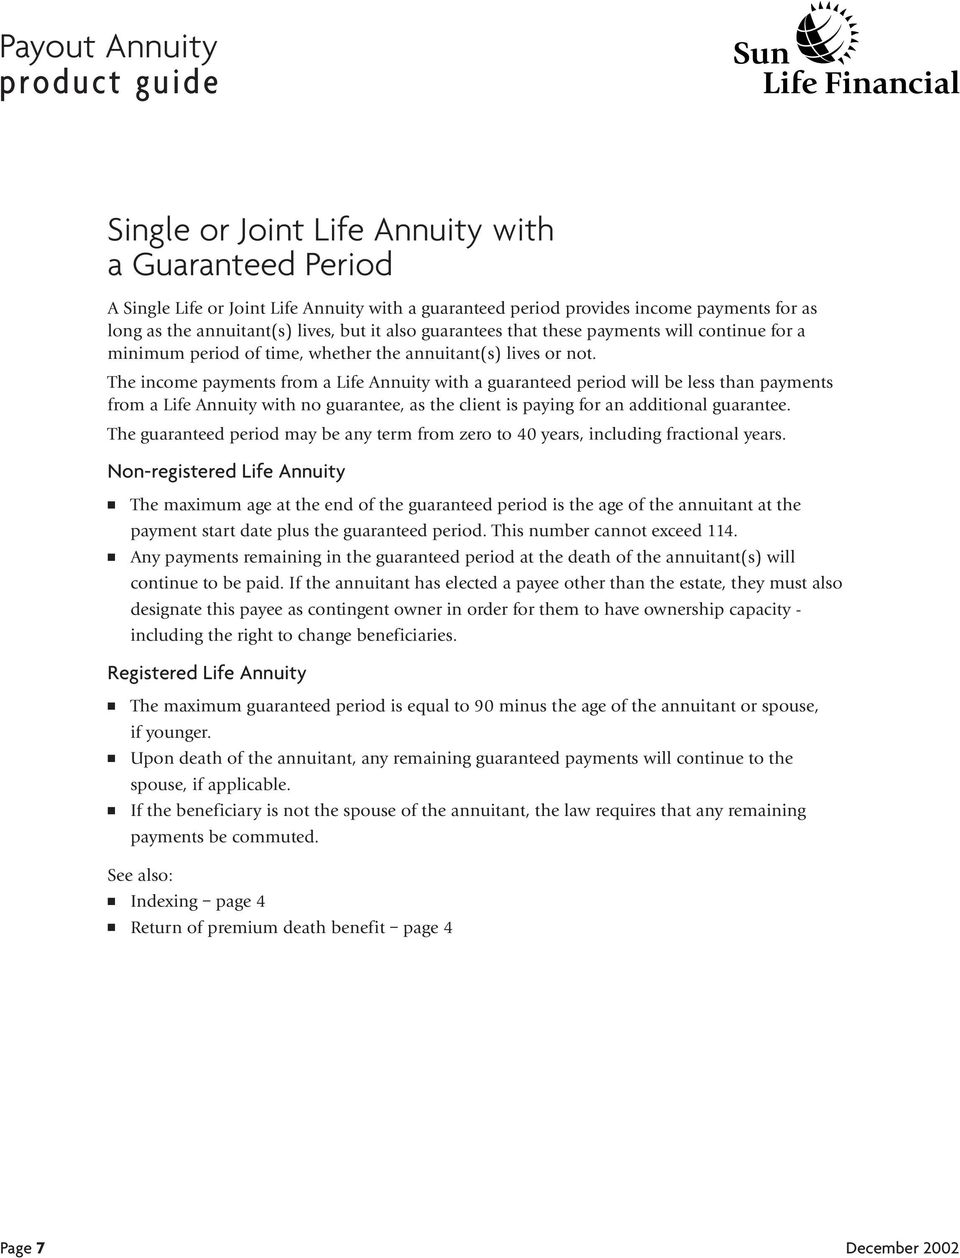 The income payments from a Life Annuity with a guaranteed period will be less than payments from a Life Annuity with no guarantee, as the client is paying for an additional guarantee.